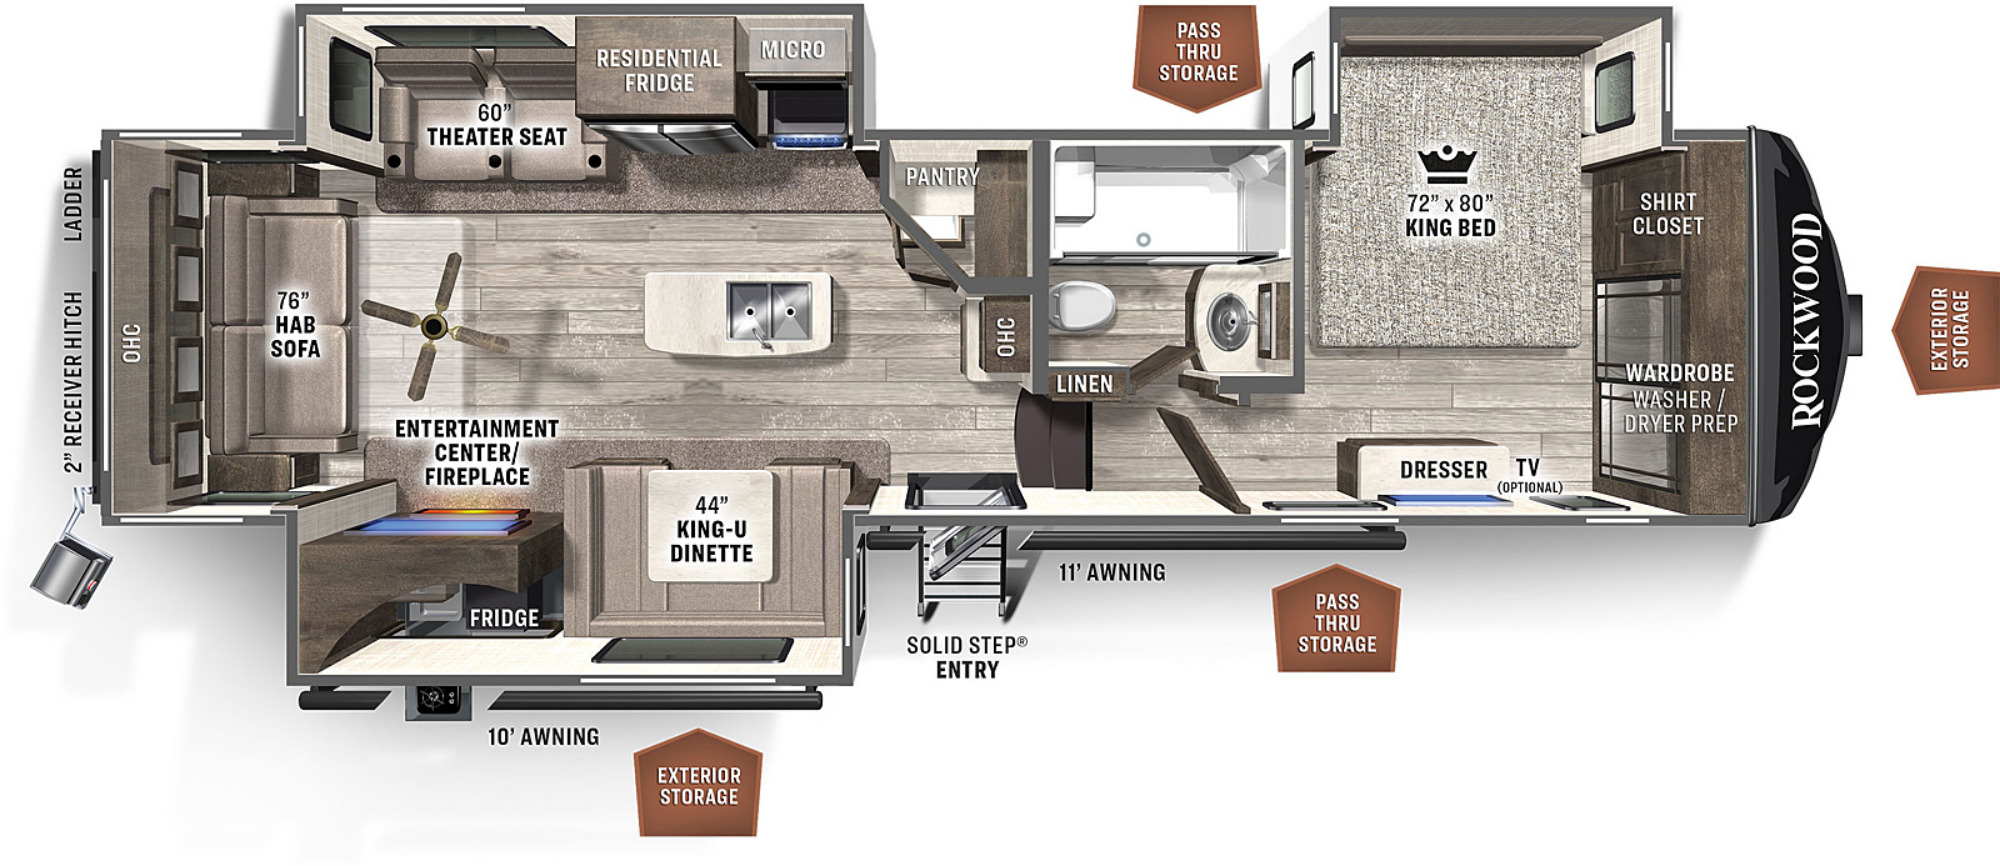 View Floor Plan for 2022 FOREST RIVER ROCKWOOD SIGNATURE ULTRA LITE 8288SB